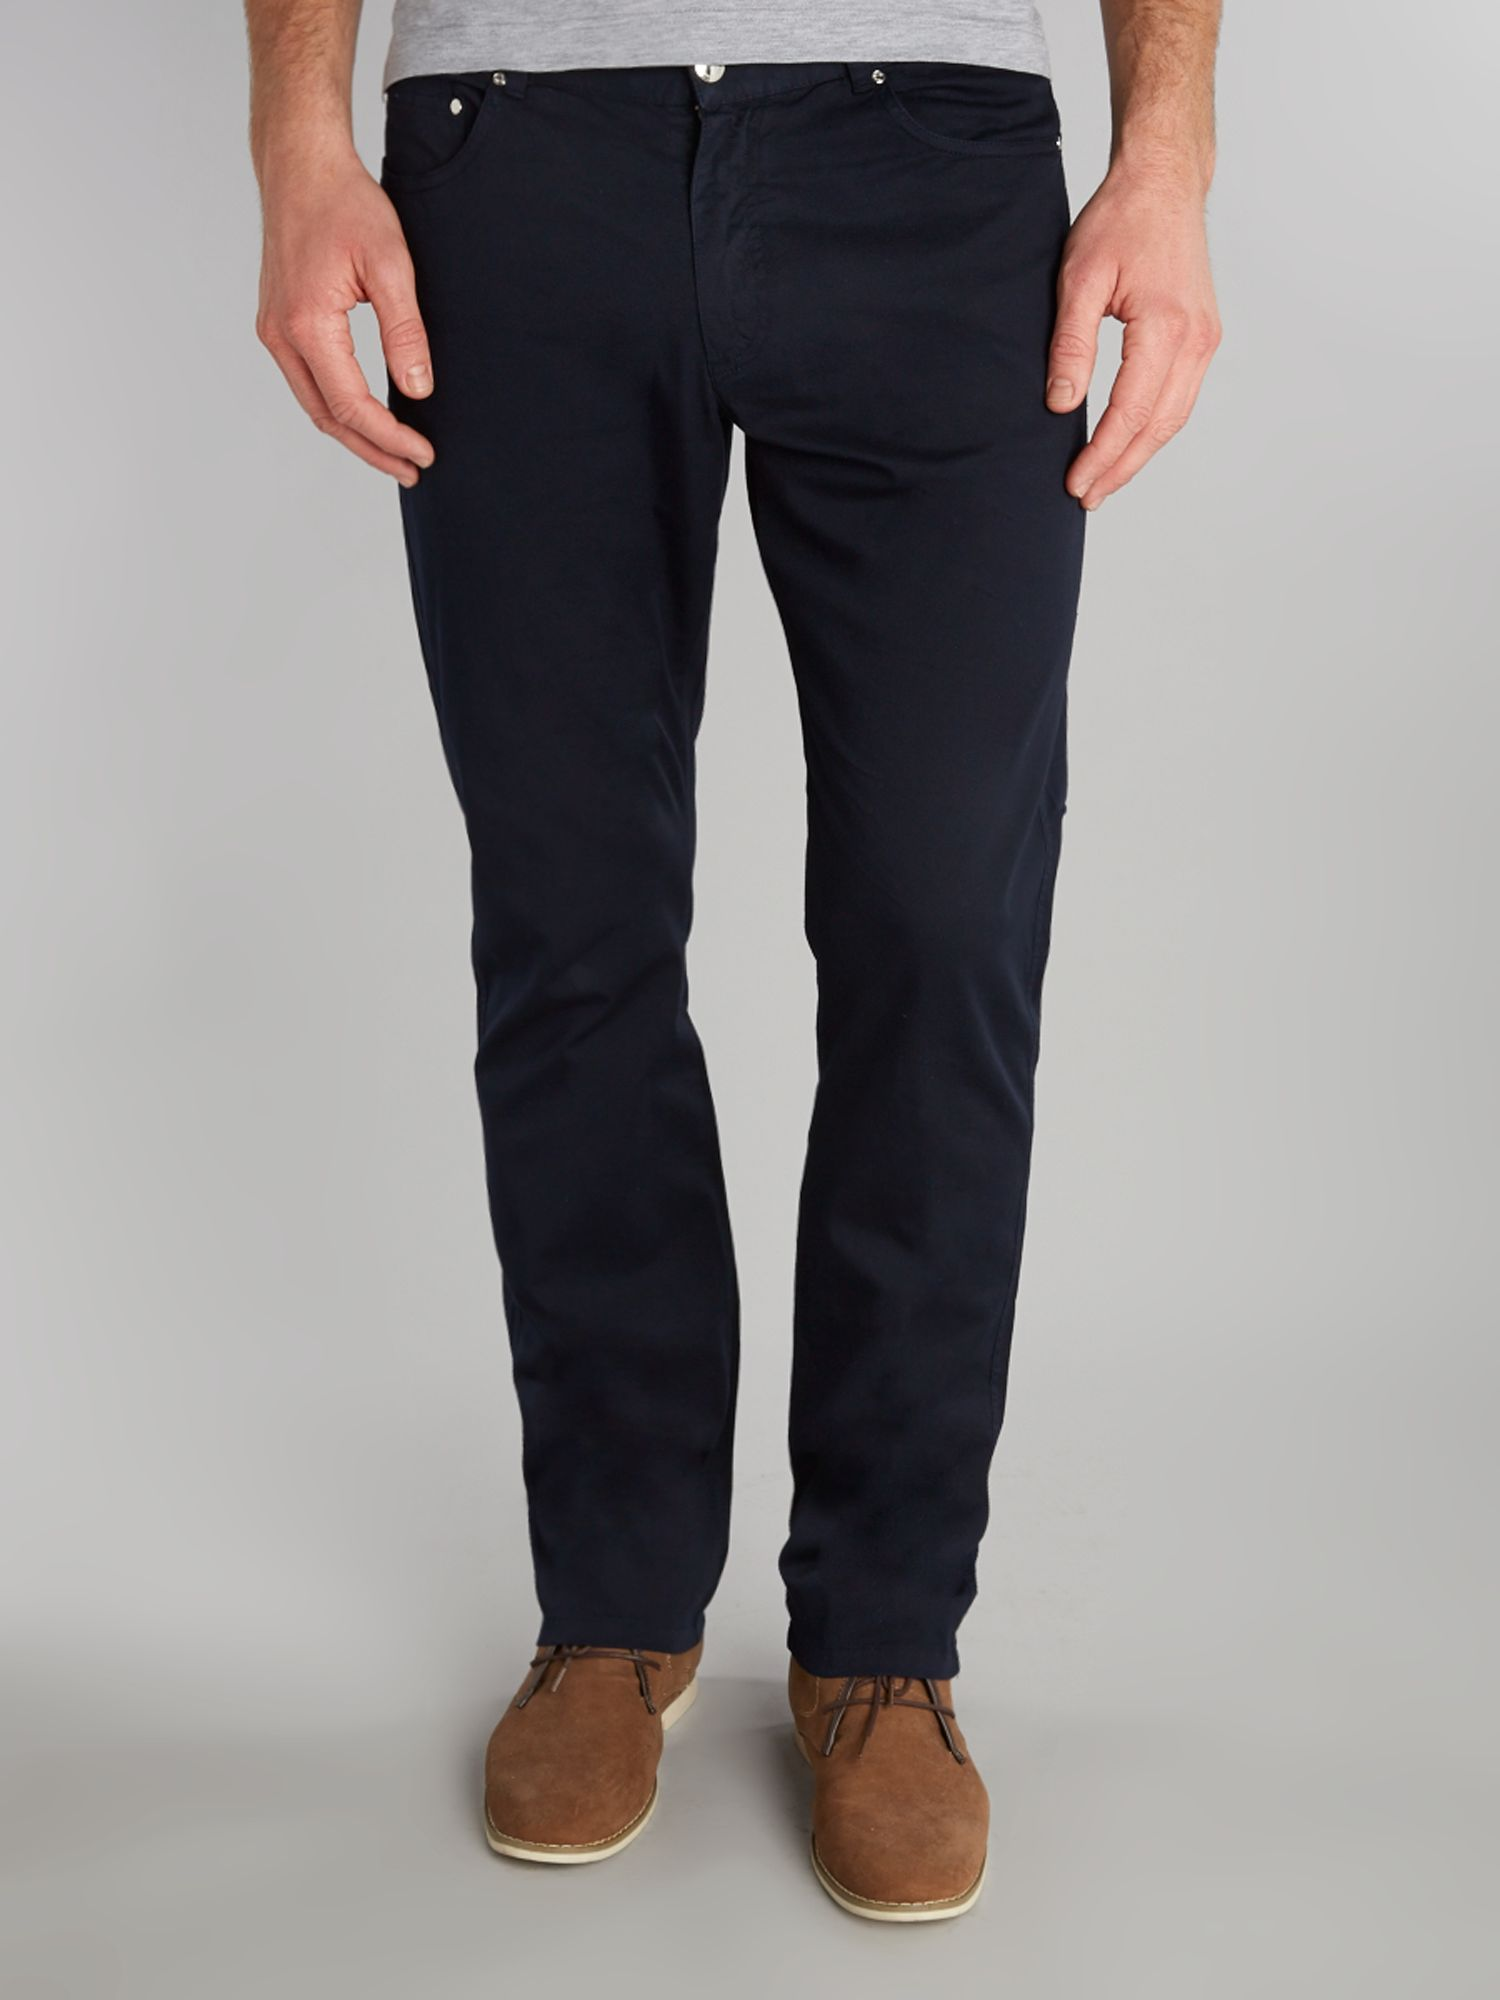 Classic regular fit chinos